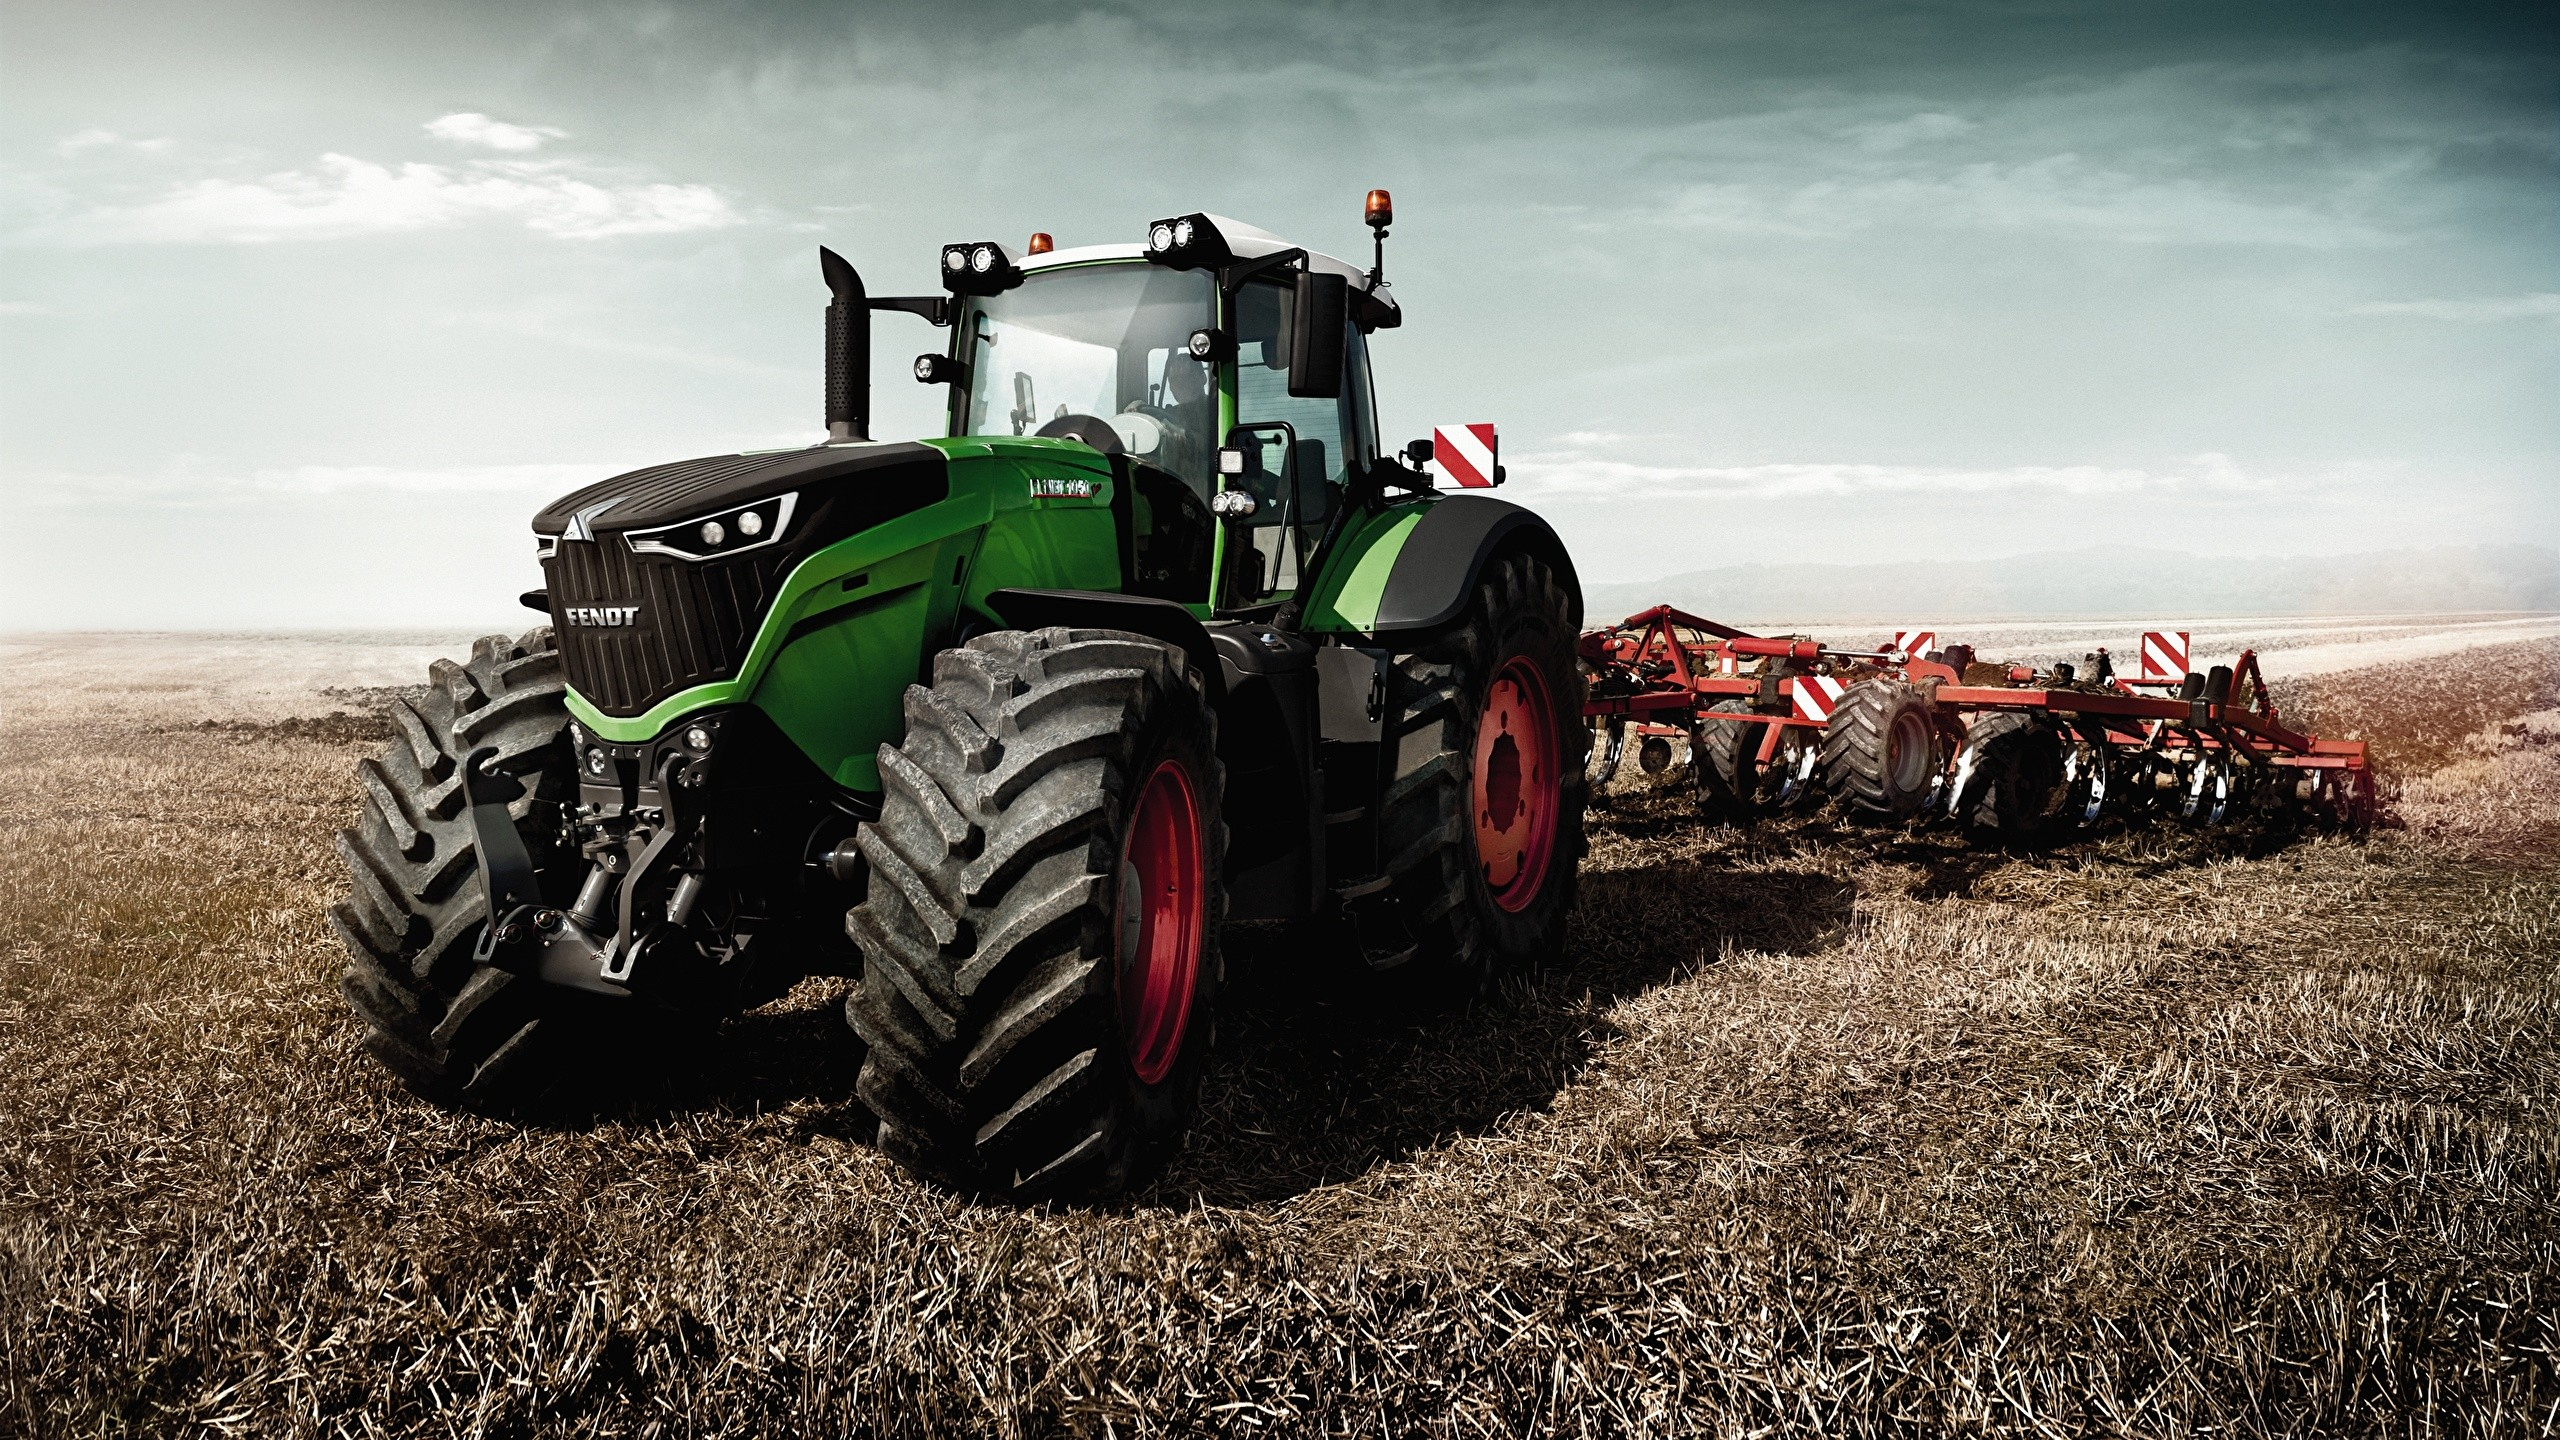 Tractor Wallpaper 64 images 2560x1440